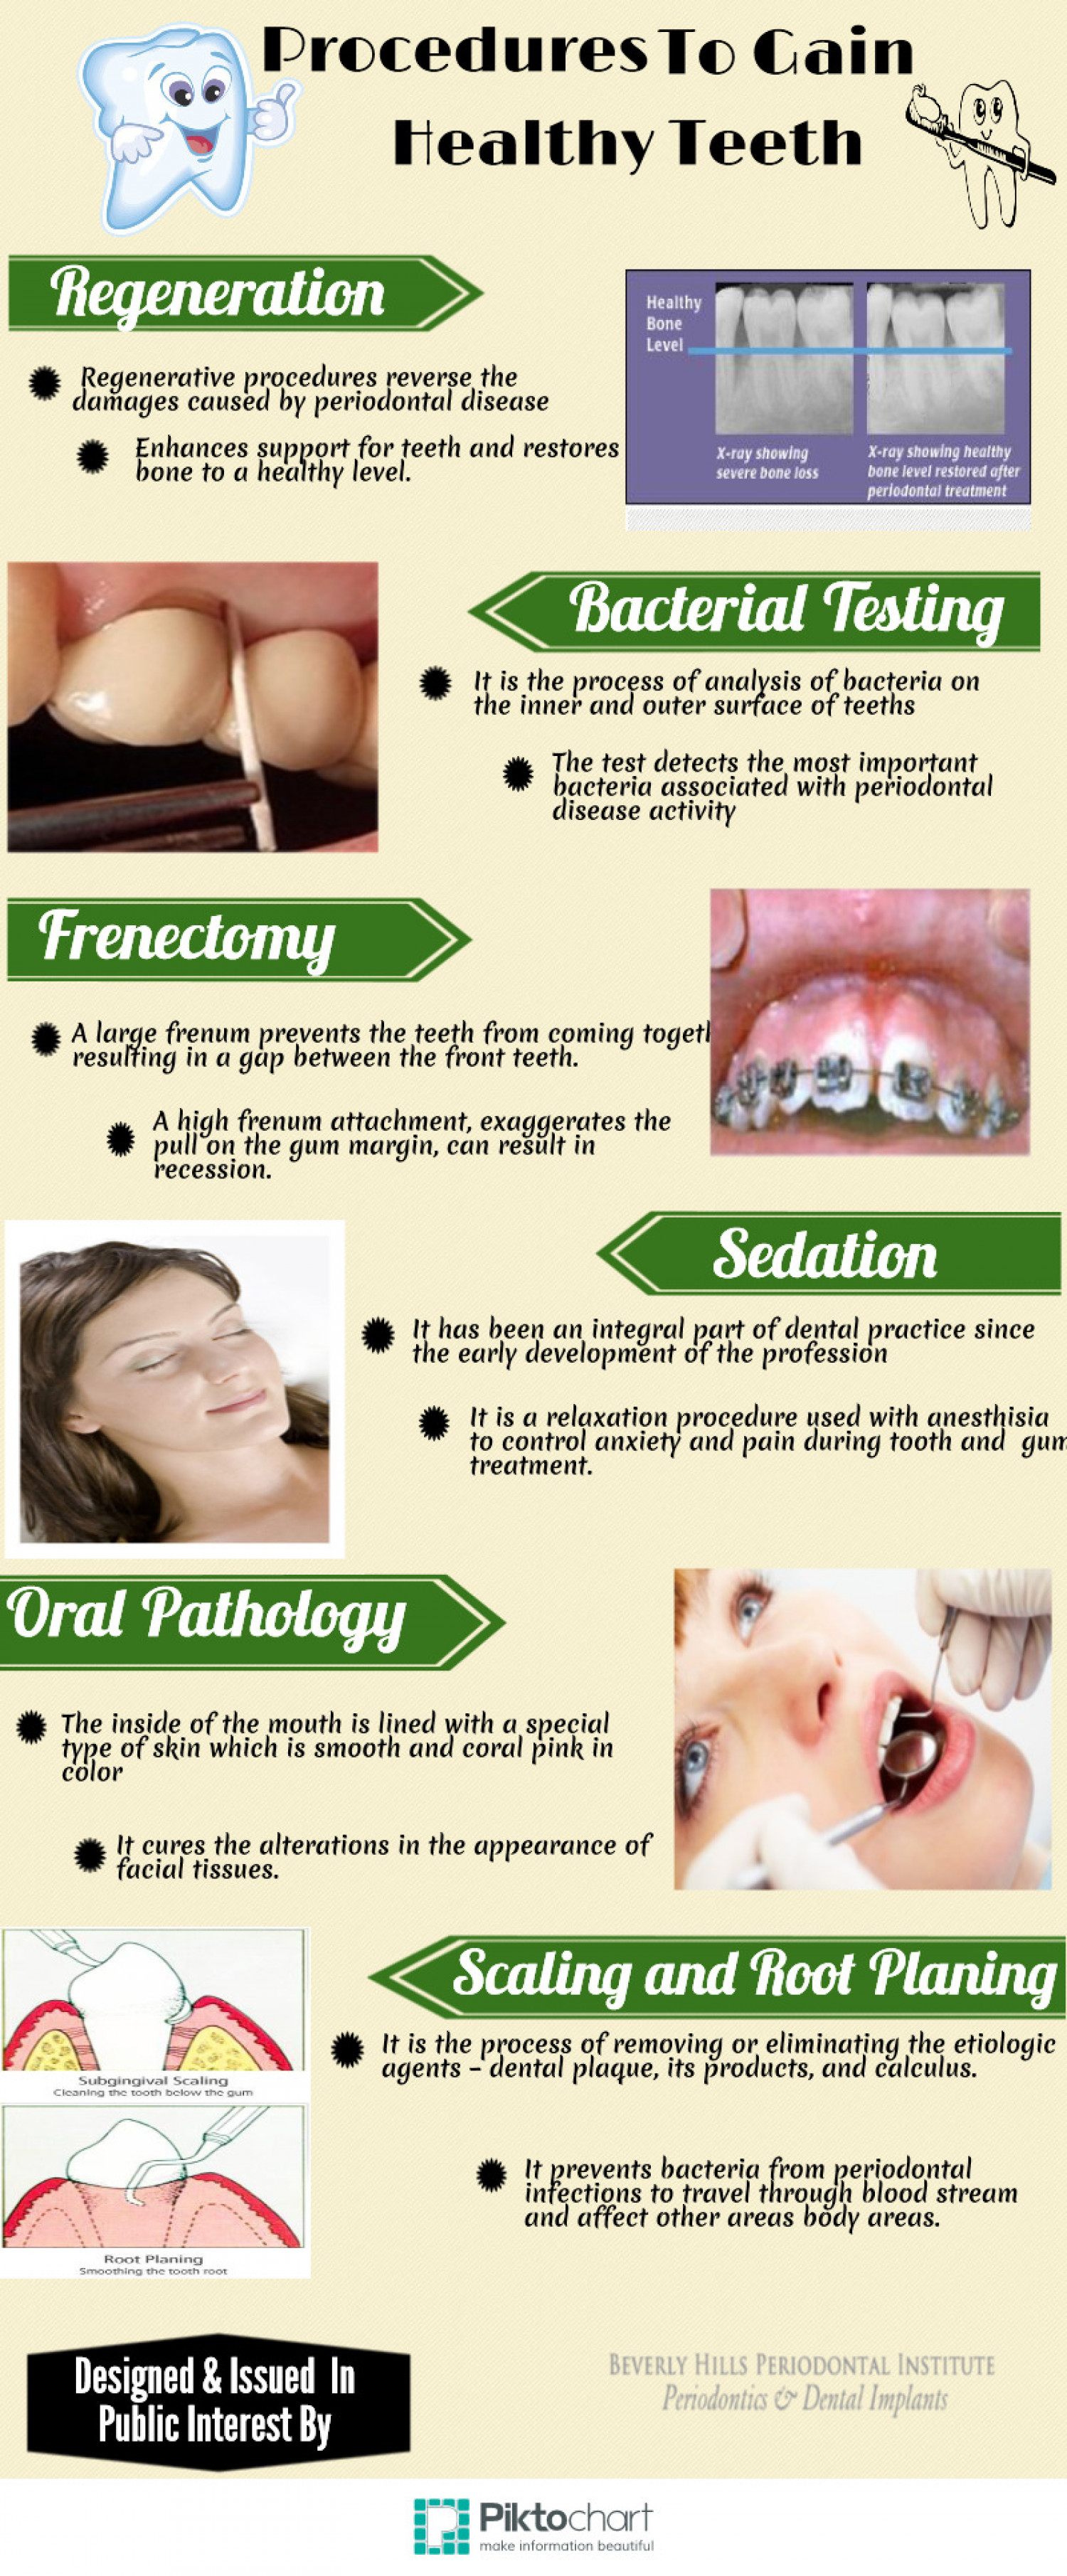 Procedures to Gain Healthy Teeths Infographic